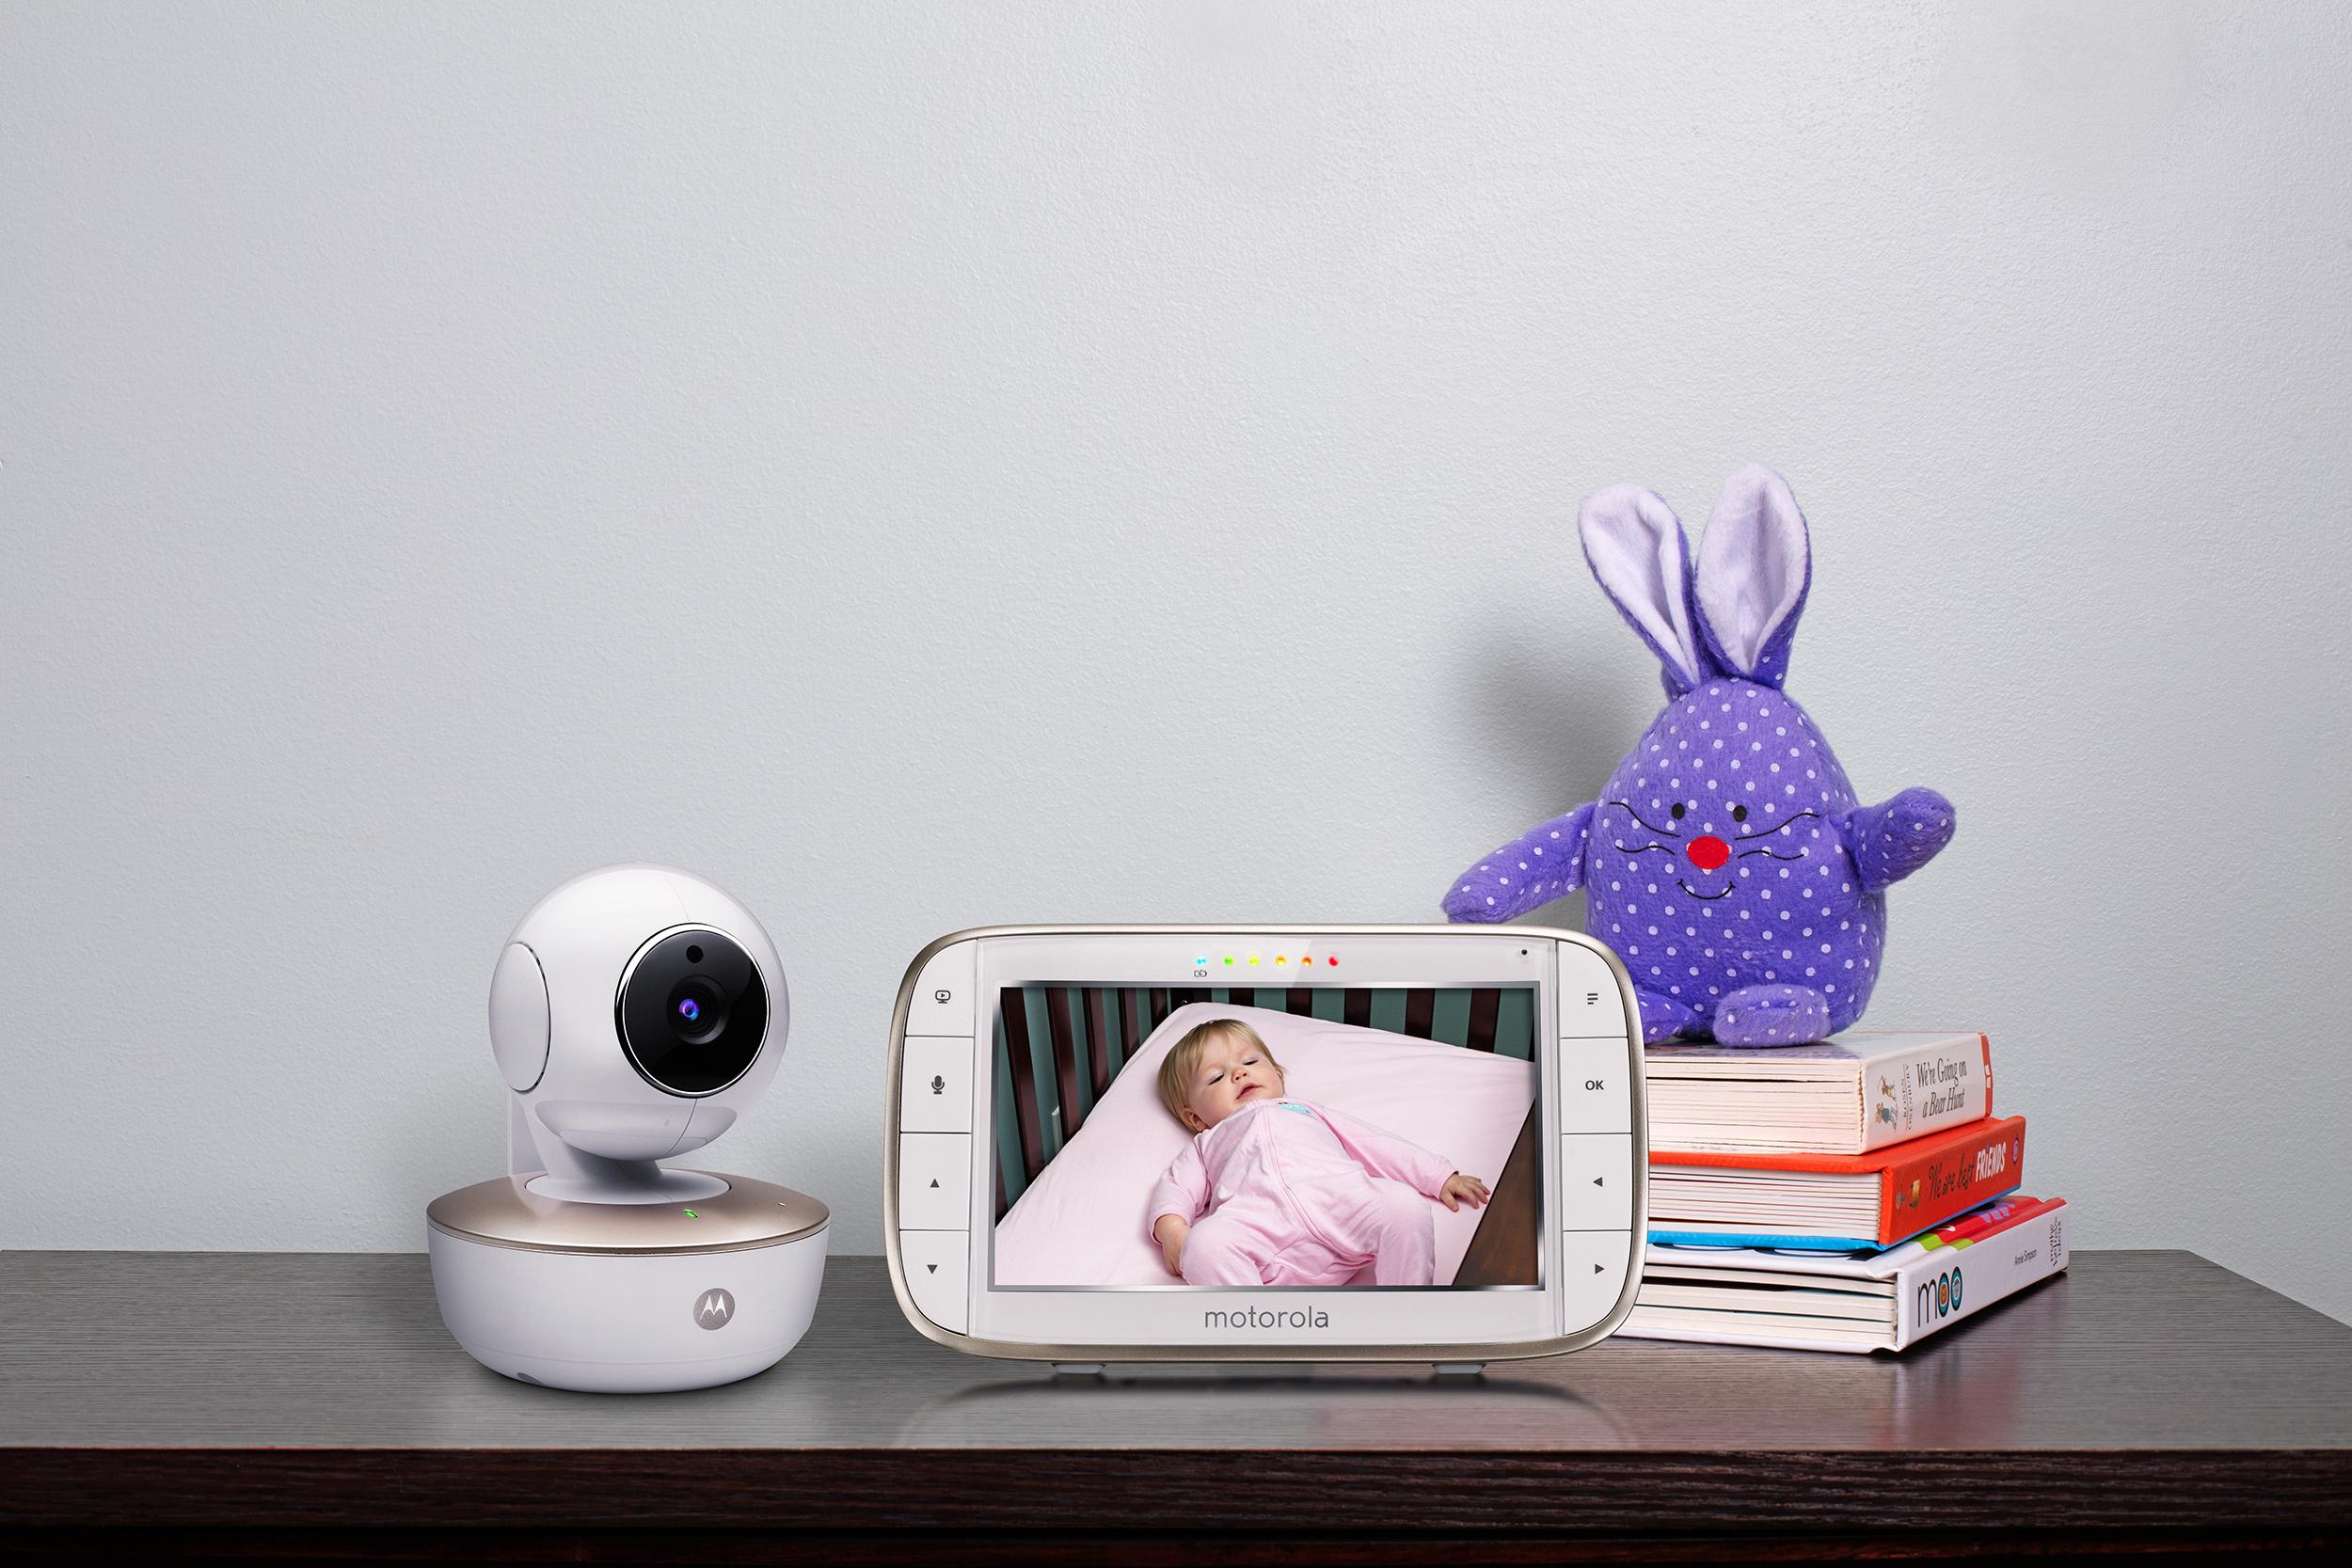 motorola 5 inch portable video baby monitor with wifi mbp855connect. view larger motorola 5 inch portable video baby monitor with wifi mbp855connect n